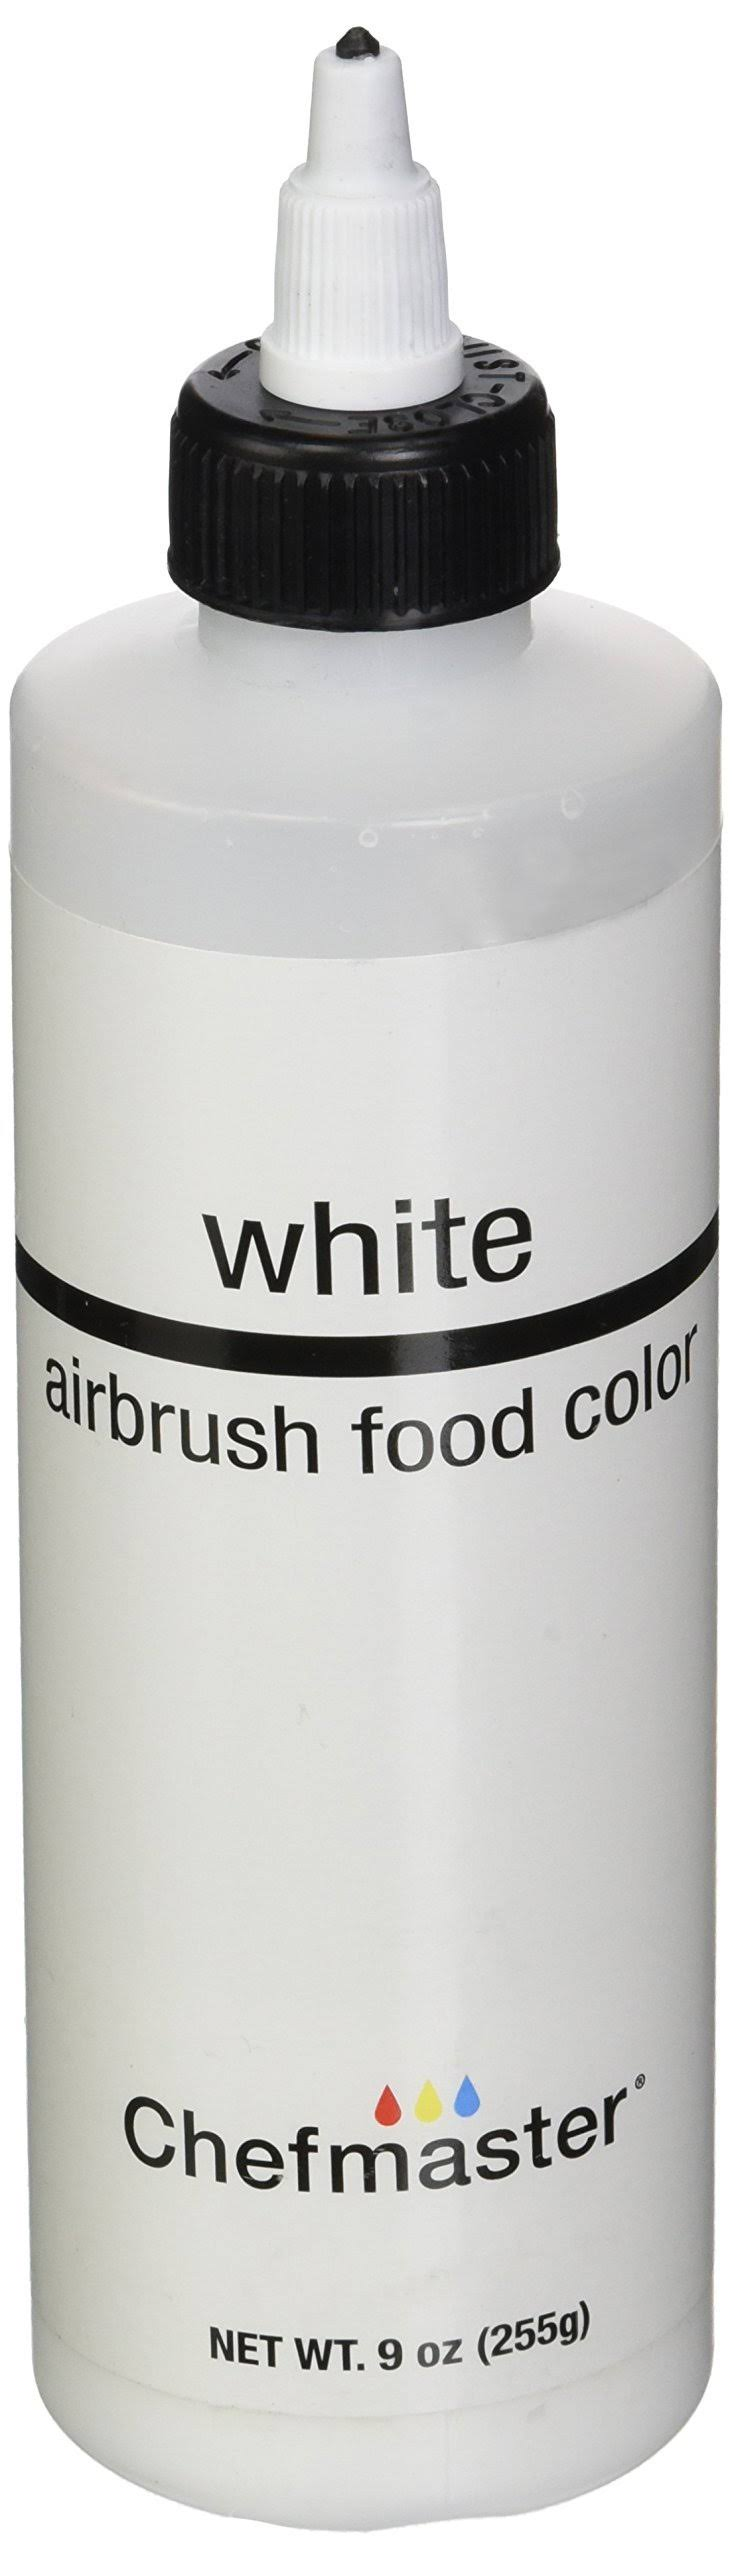 Chefmaster Airbrush Spray Food Color - White, 9oz